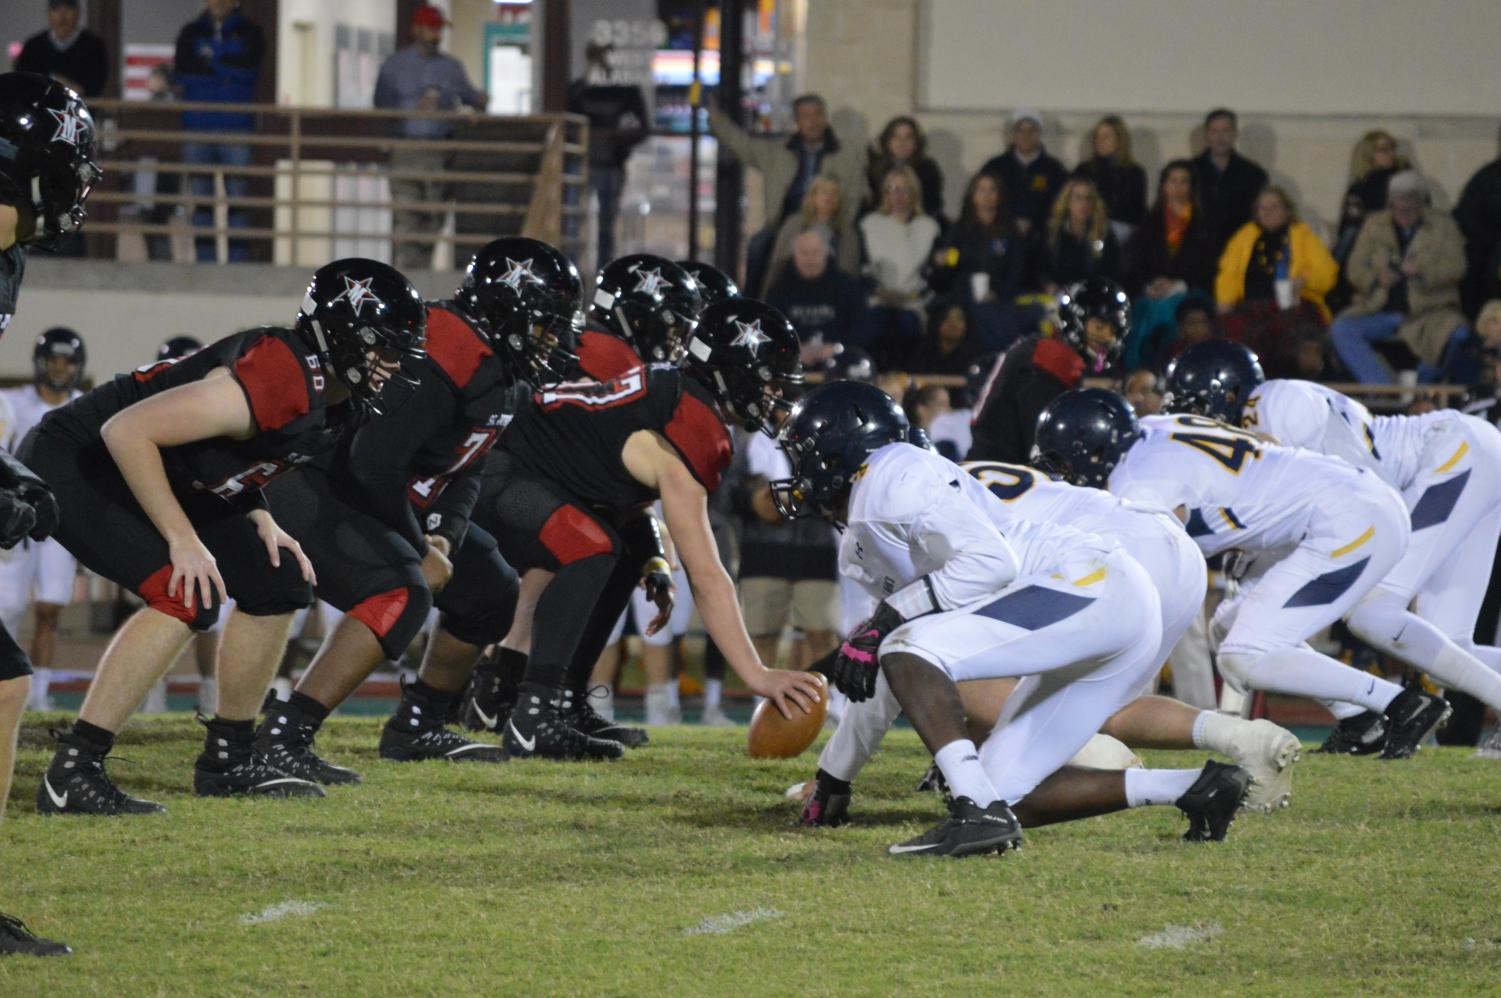 Football played its final home game against the St. Mark's Lions, which ended in a close 35-34 defeat for the Mavericks.